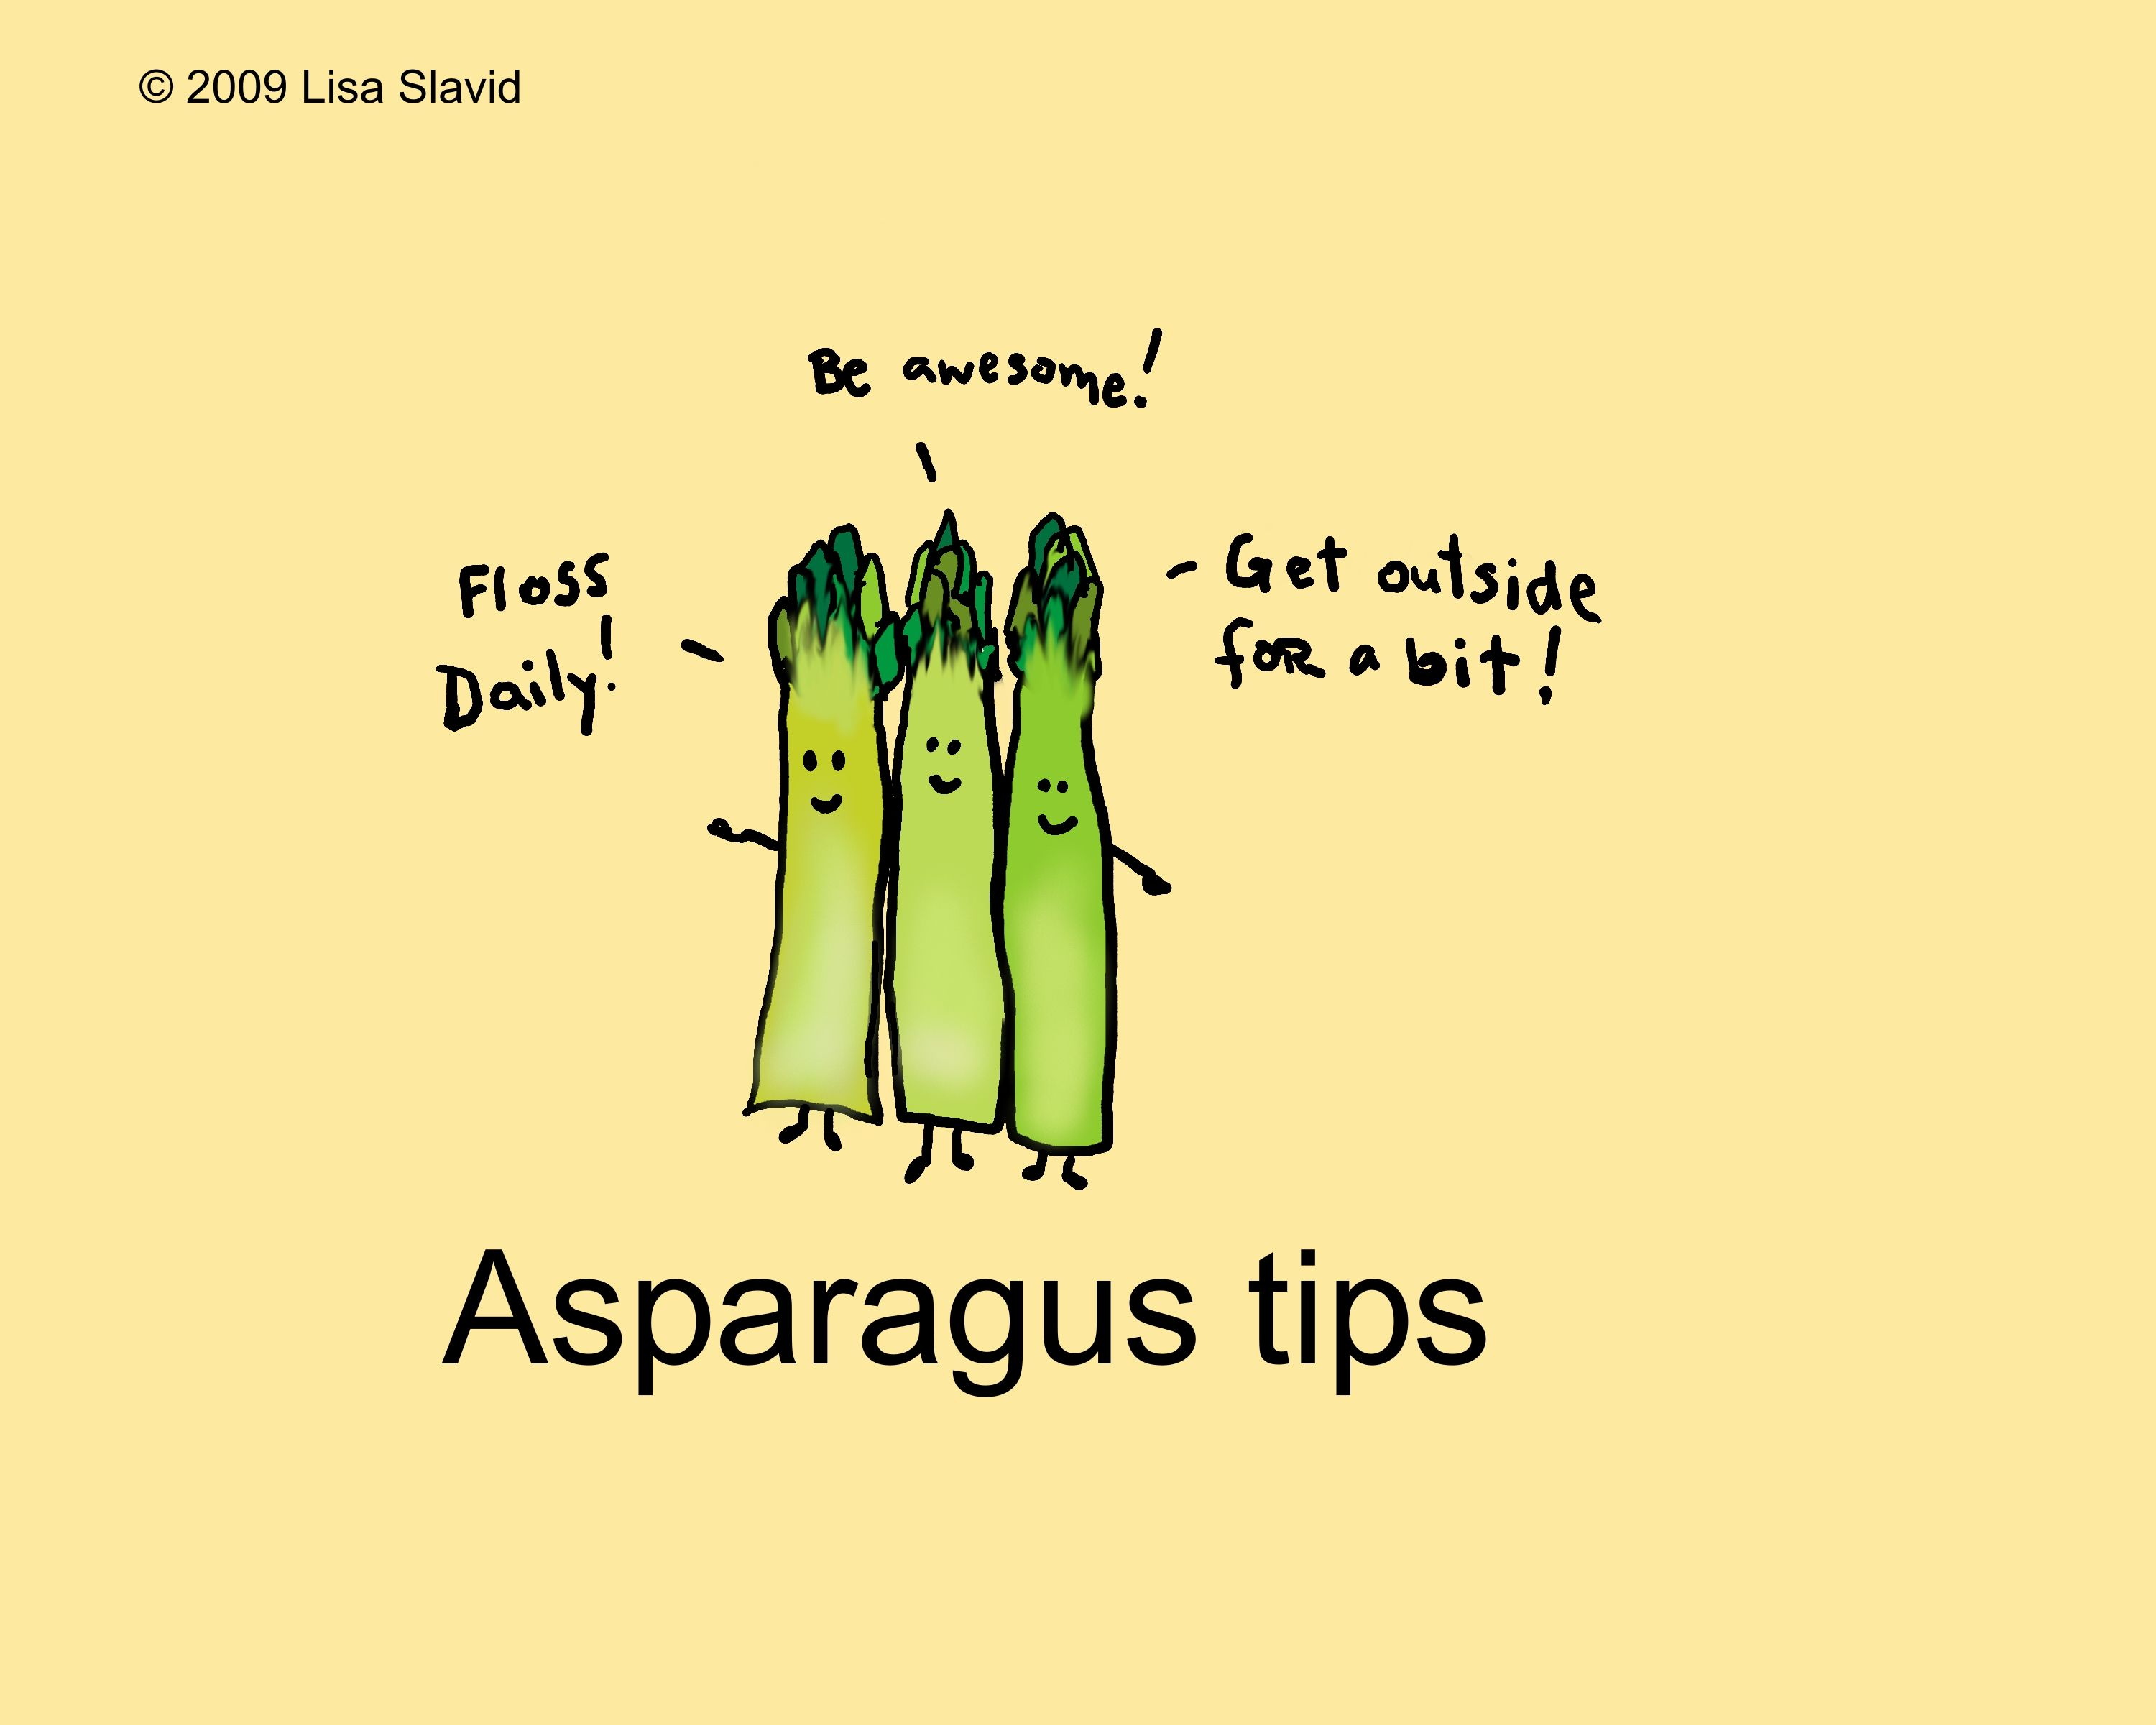 Pinterest Jokes: Cartoons, Asparagus, Wise Vegetables, Floss